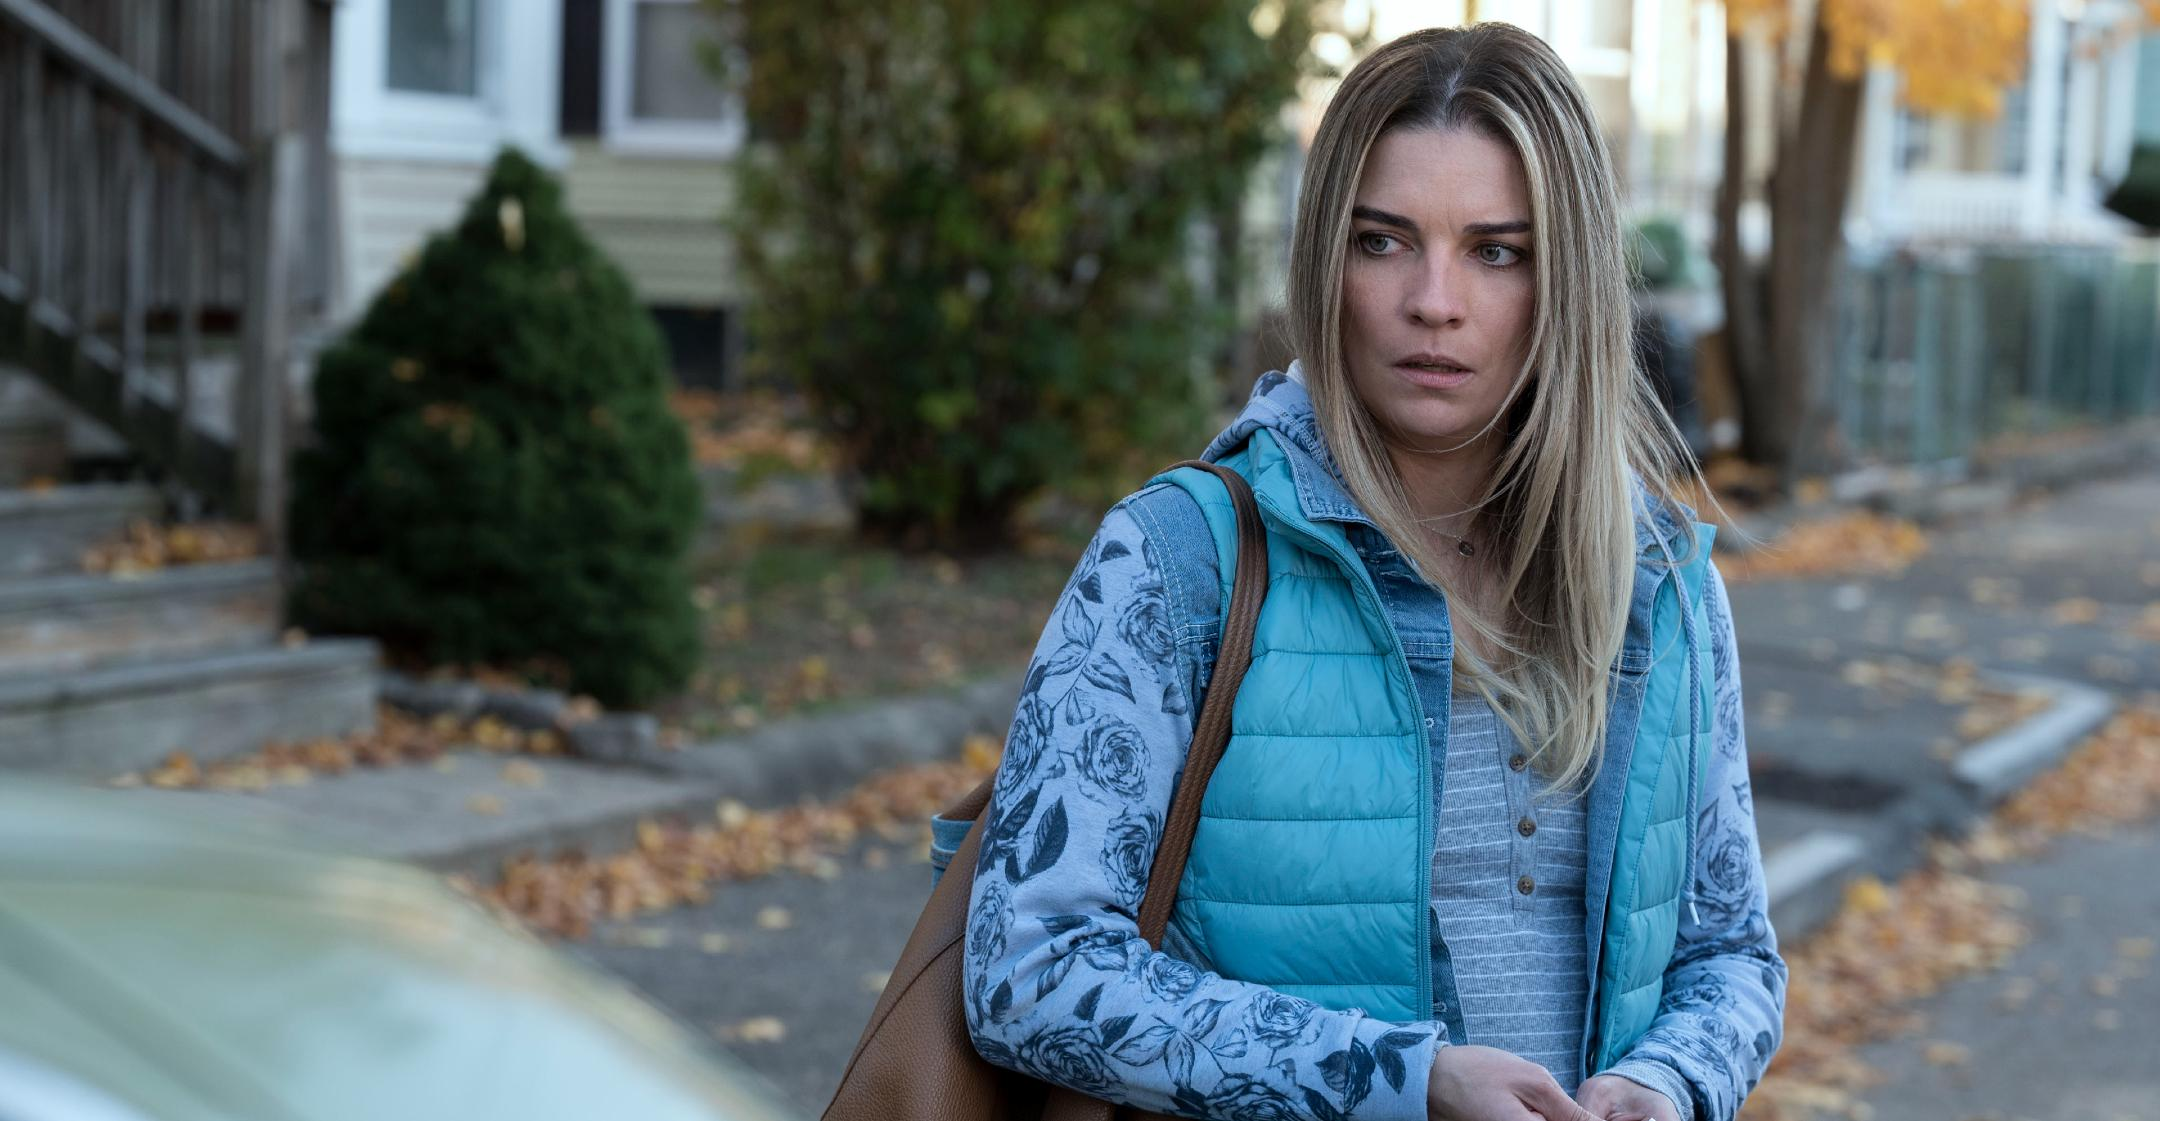 annie murphy took gritty role in kevin can f himself to prove she could do something different